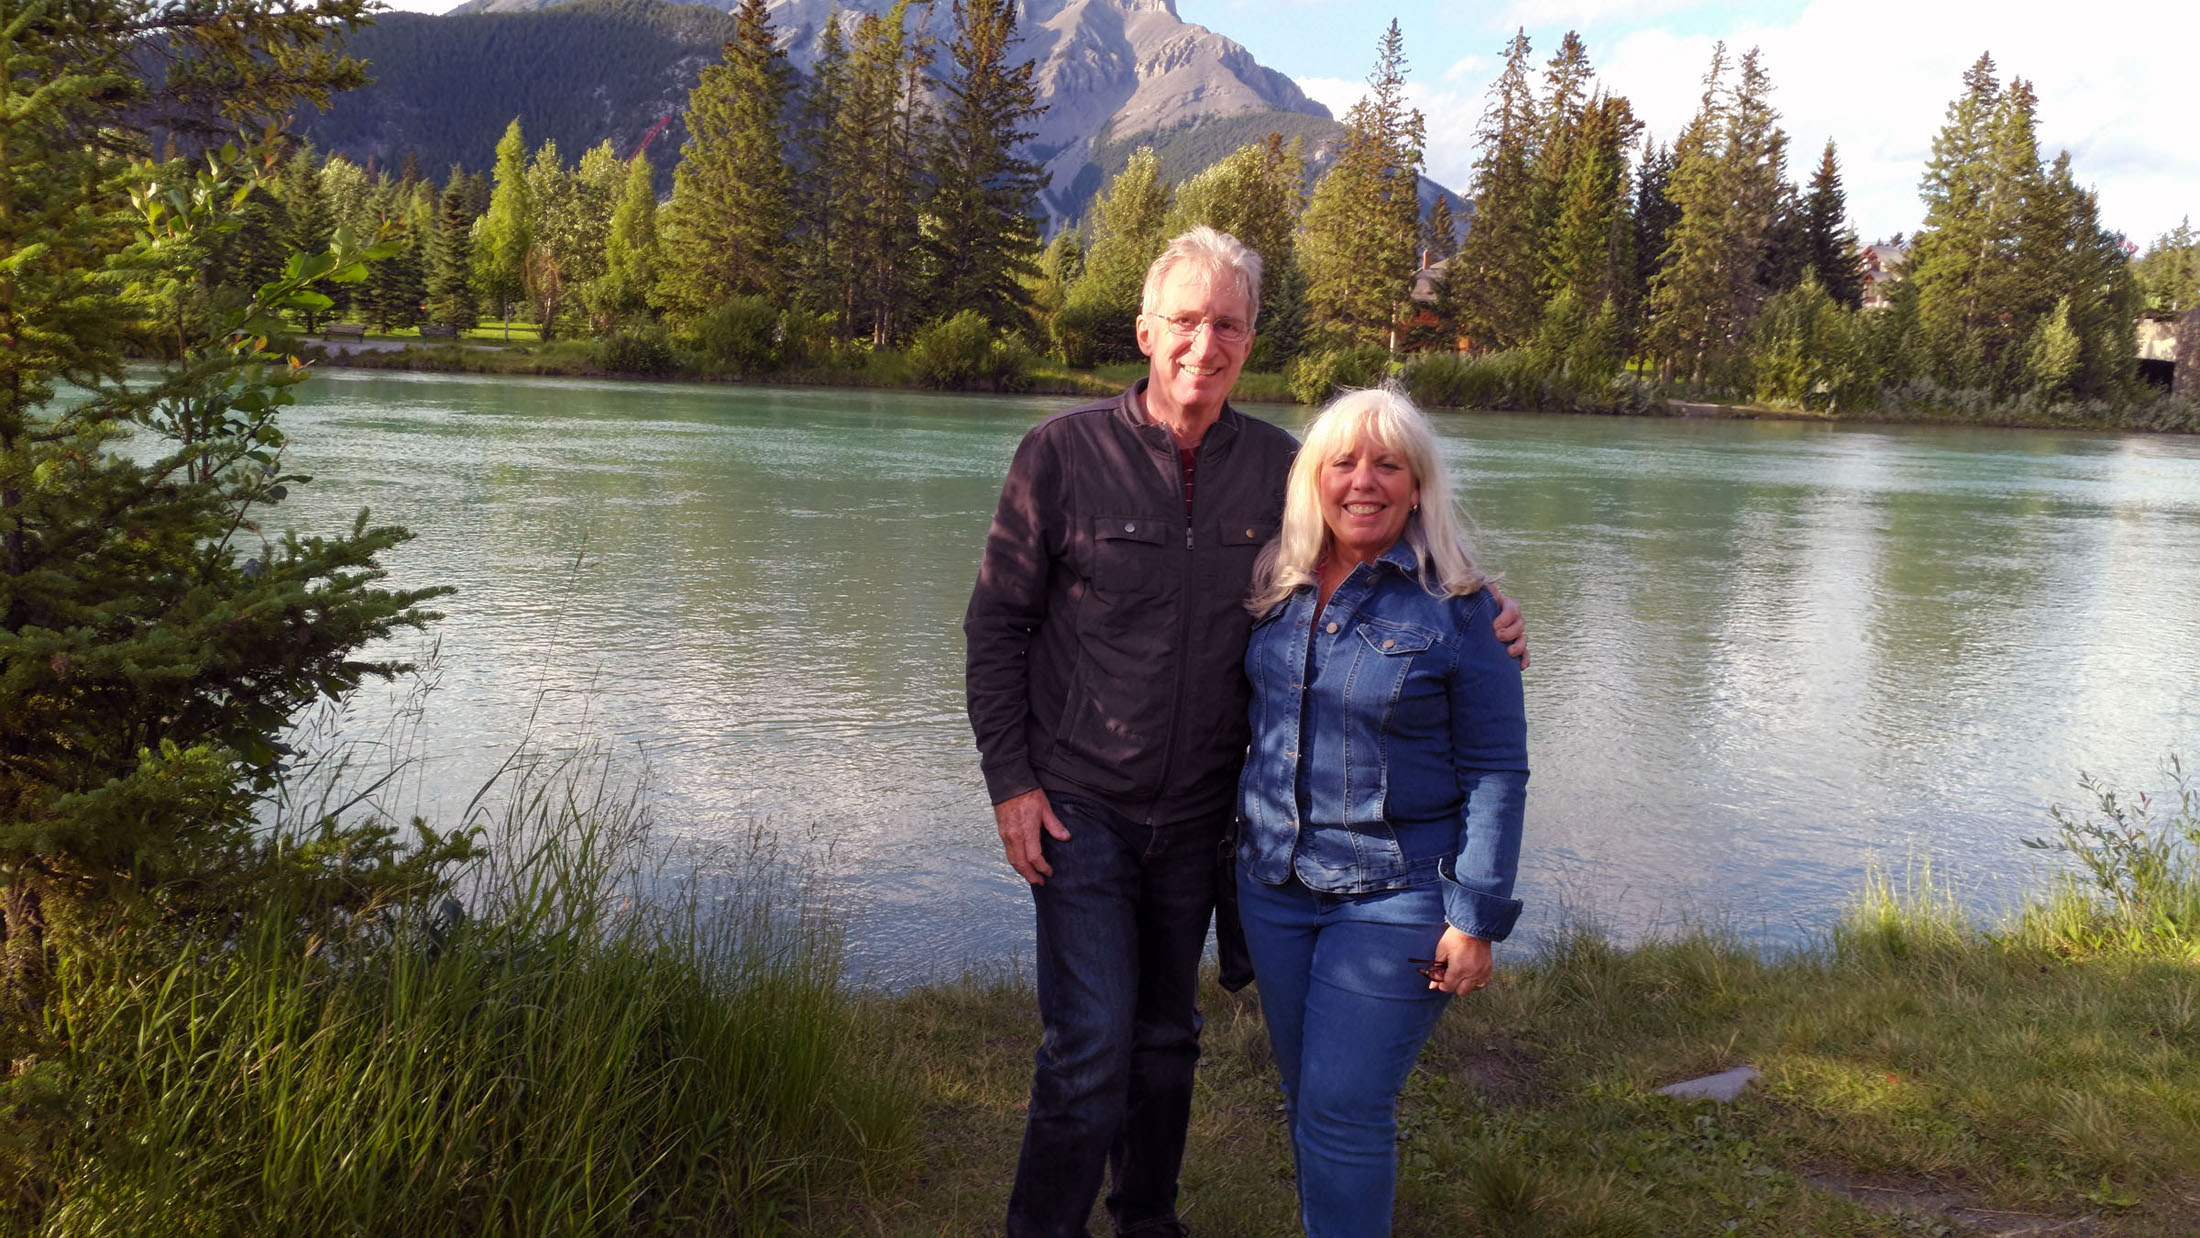 Craig and Fran Davis by the Bow River in Banff, Alberta. (craigslegztravels.com)